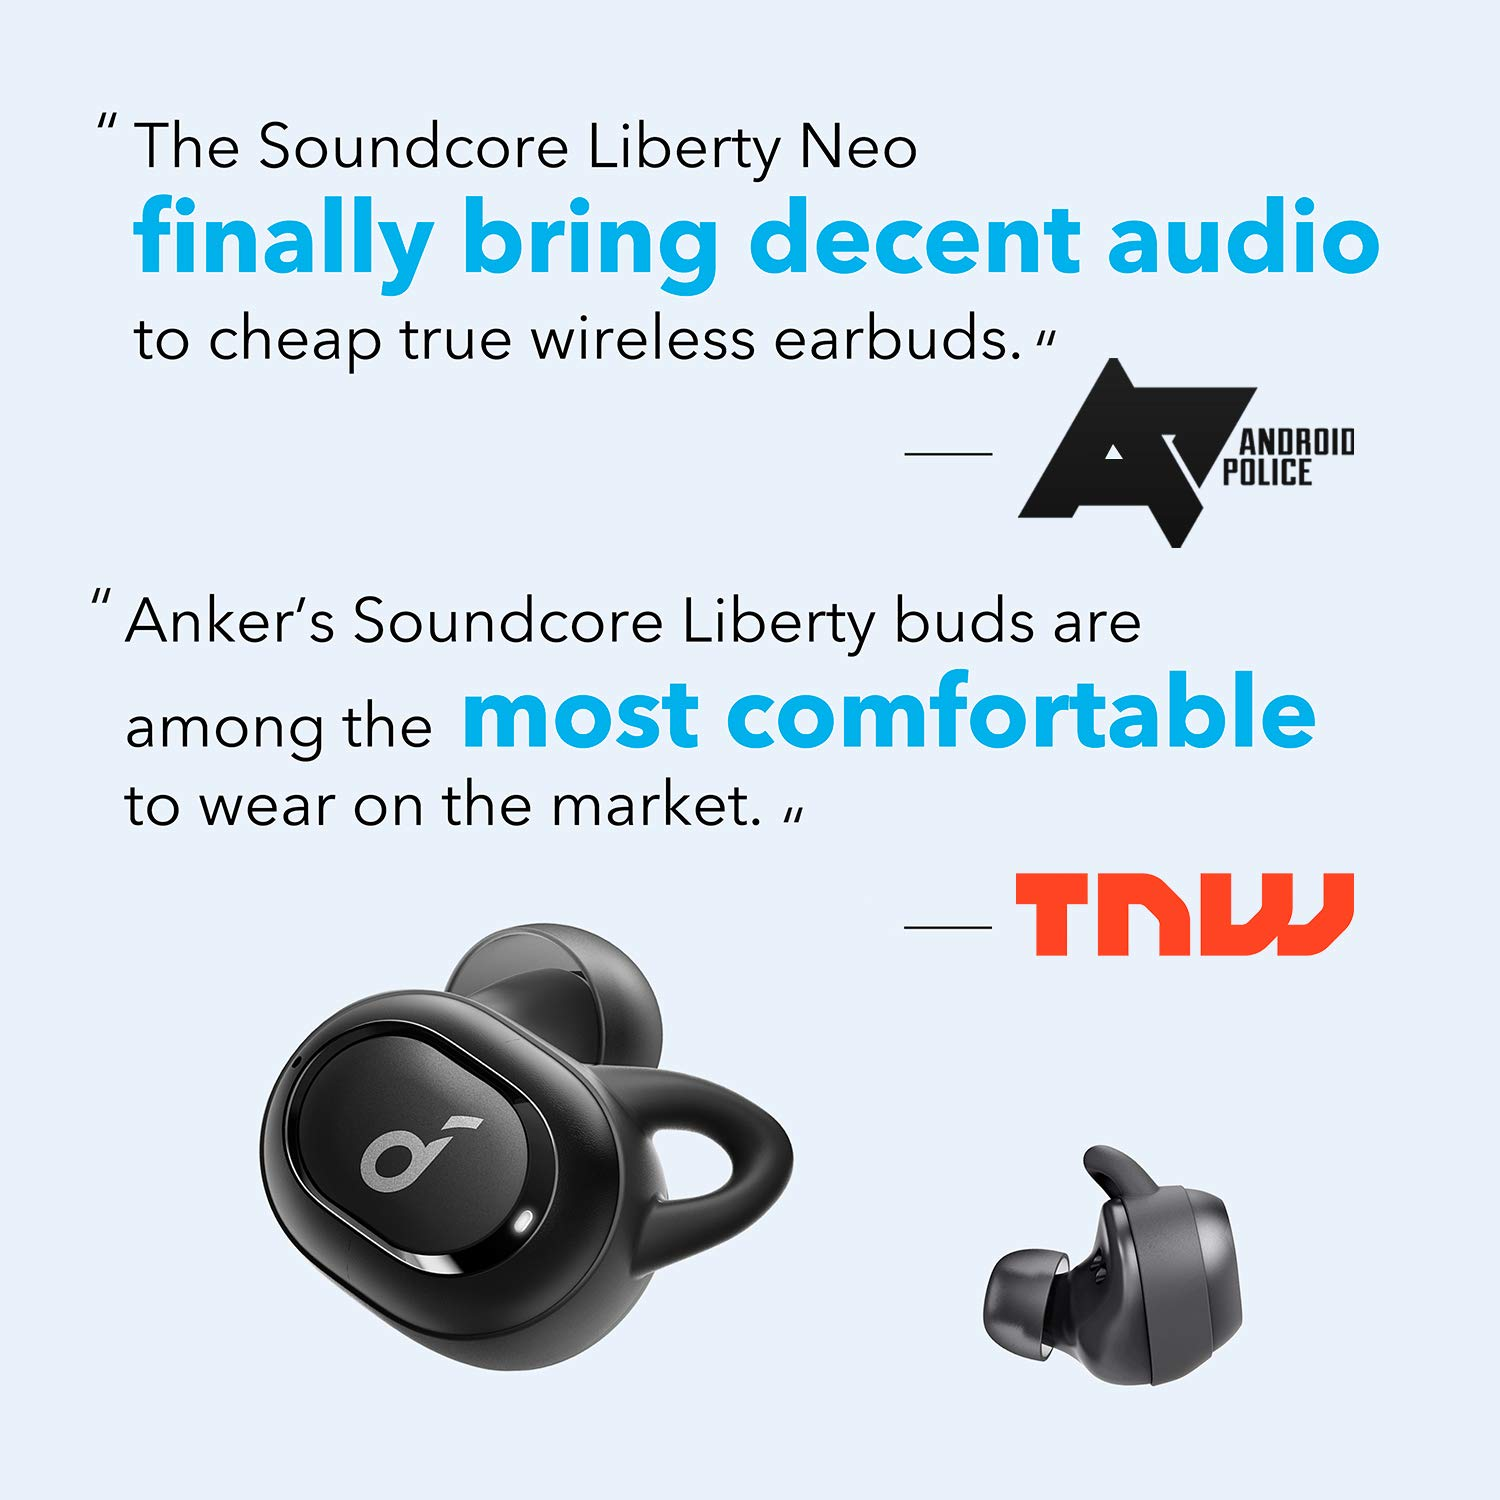 Anker Soundcore Liberty Neo, Bluetooth Earbuds, Premium Sound with Pumping Bass, Secure Fit, Bluetooth 5.0 Headphones, Stereo Calls, Noise Canceling, Easy Pairing, Sweatproof for Sports, Work Out, Gym by Soundcore (Image #2)